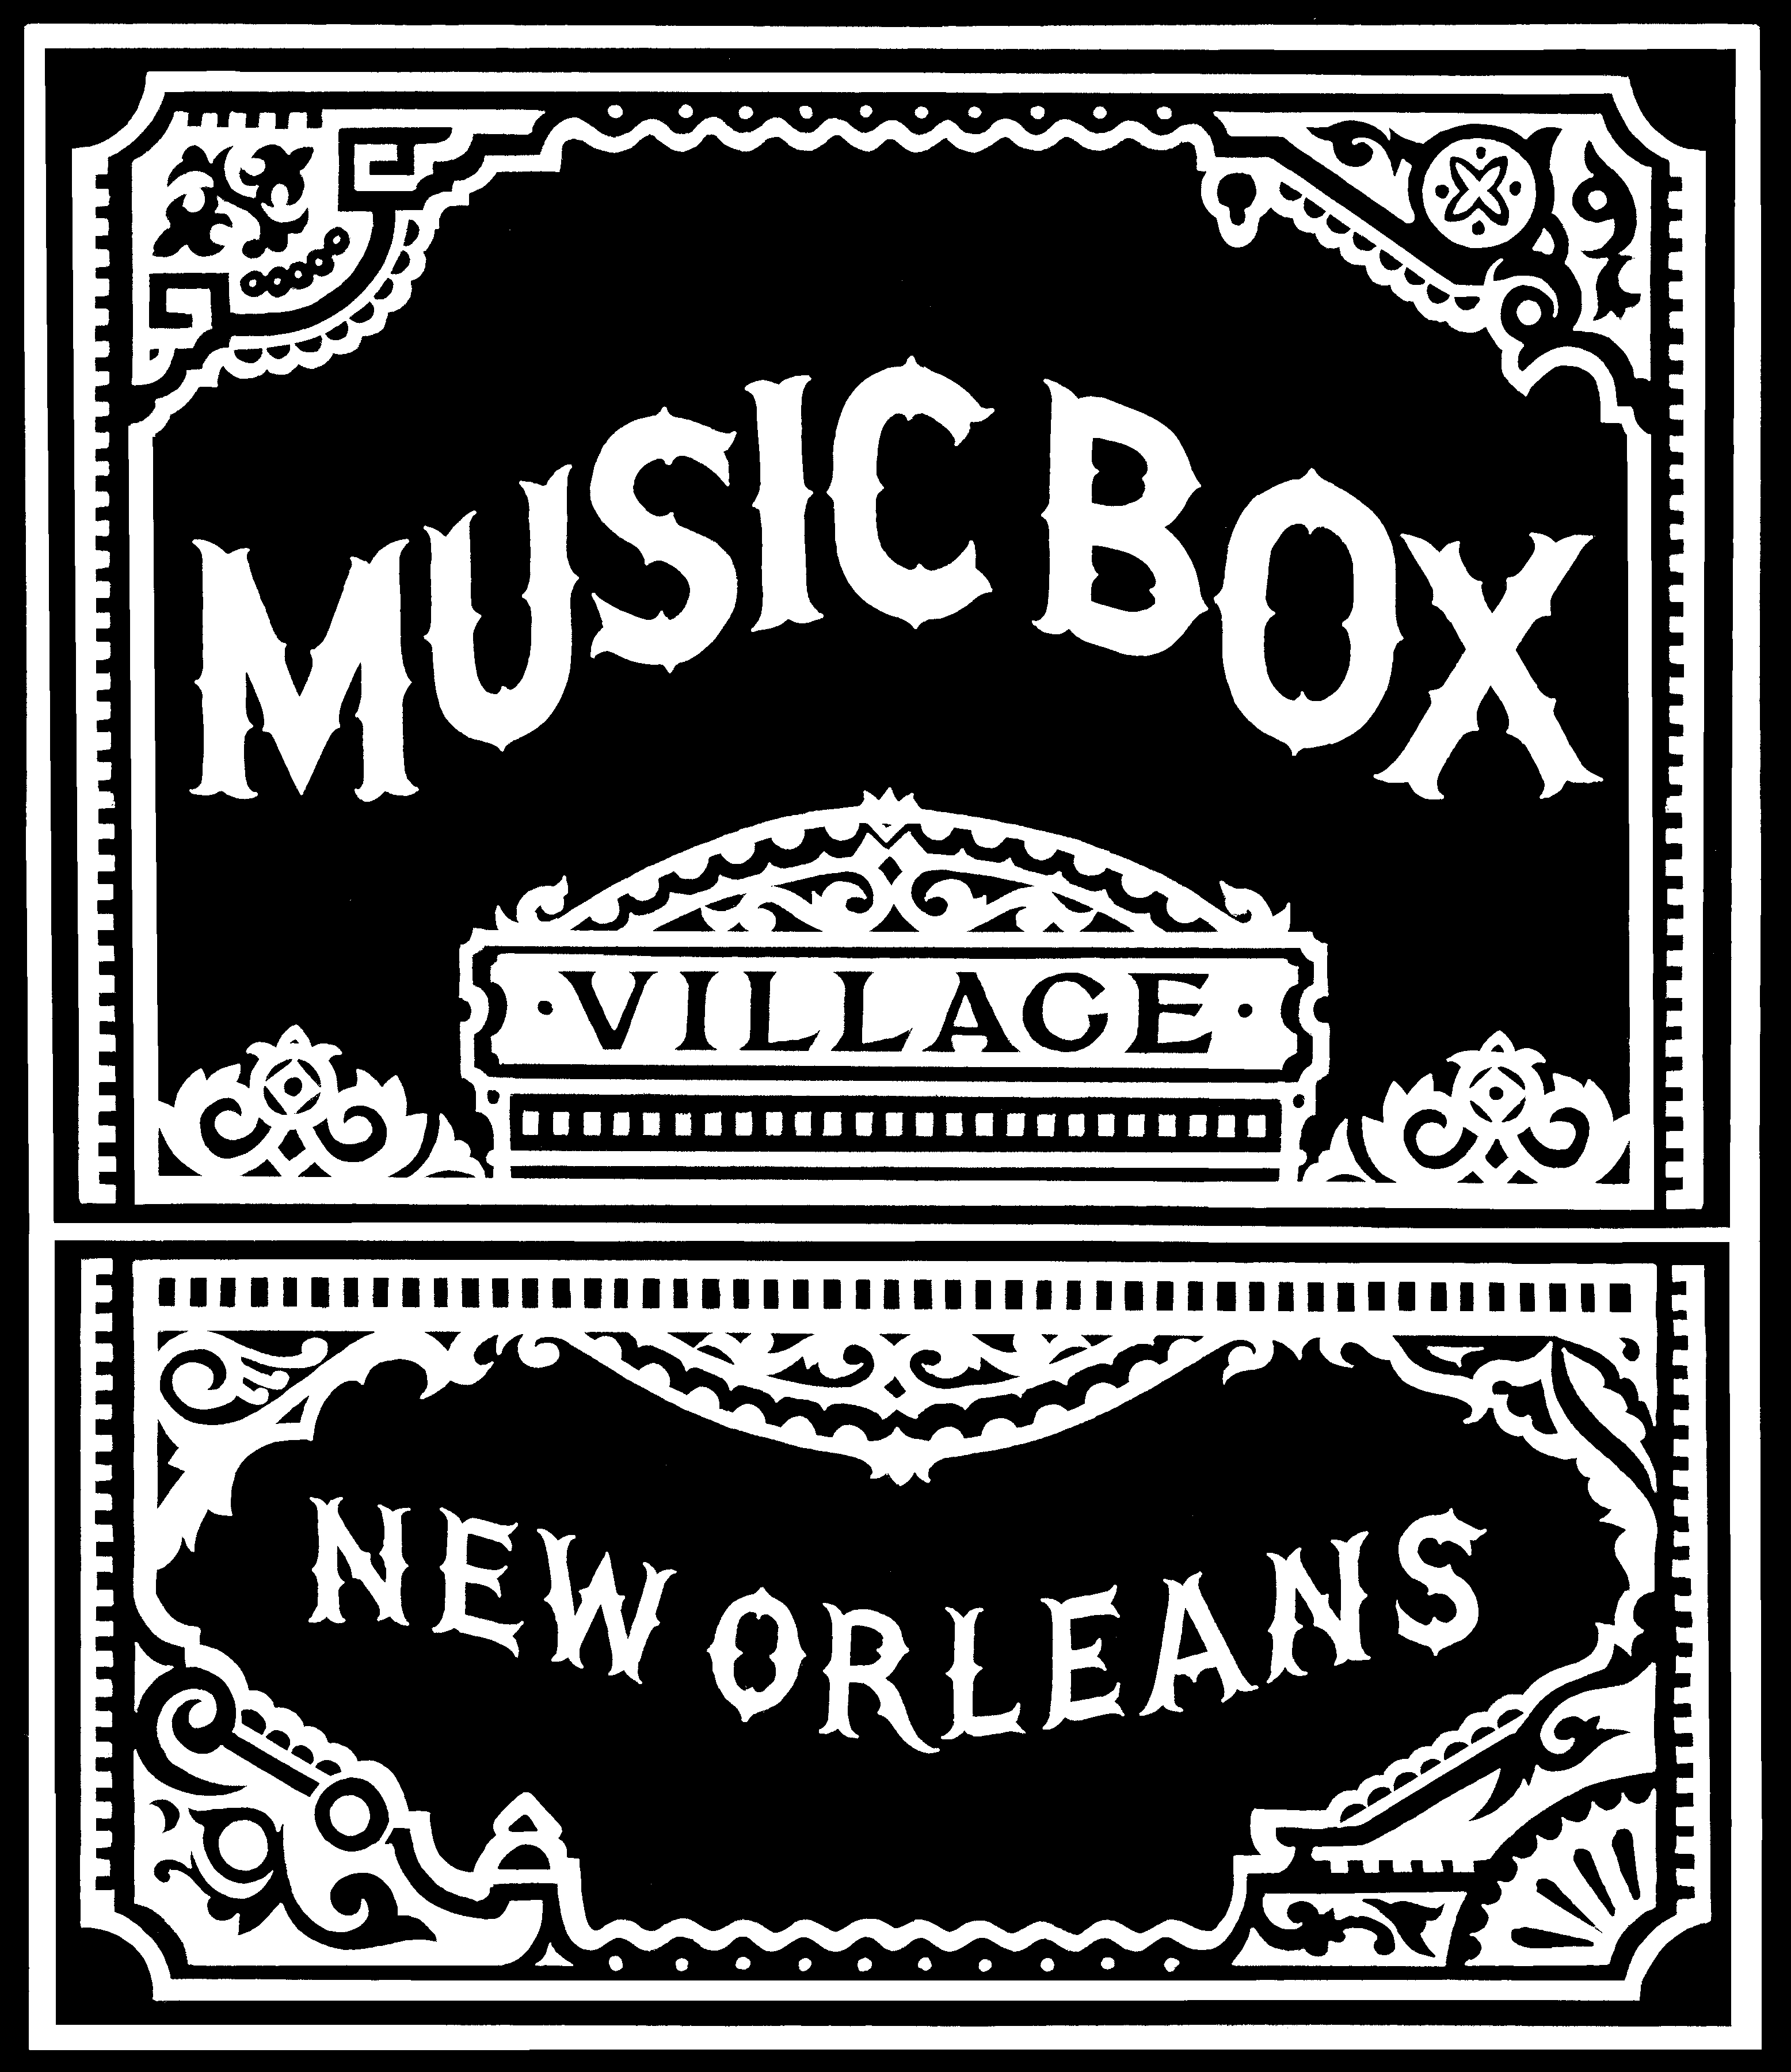 music box village logo